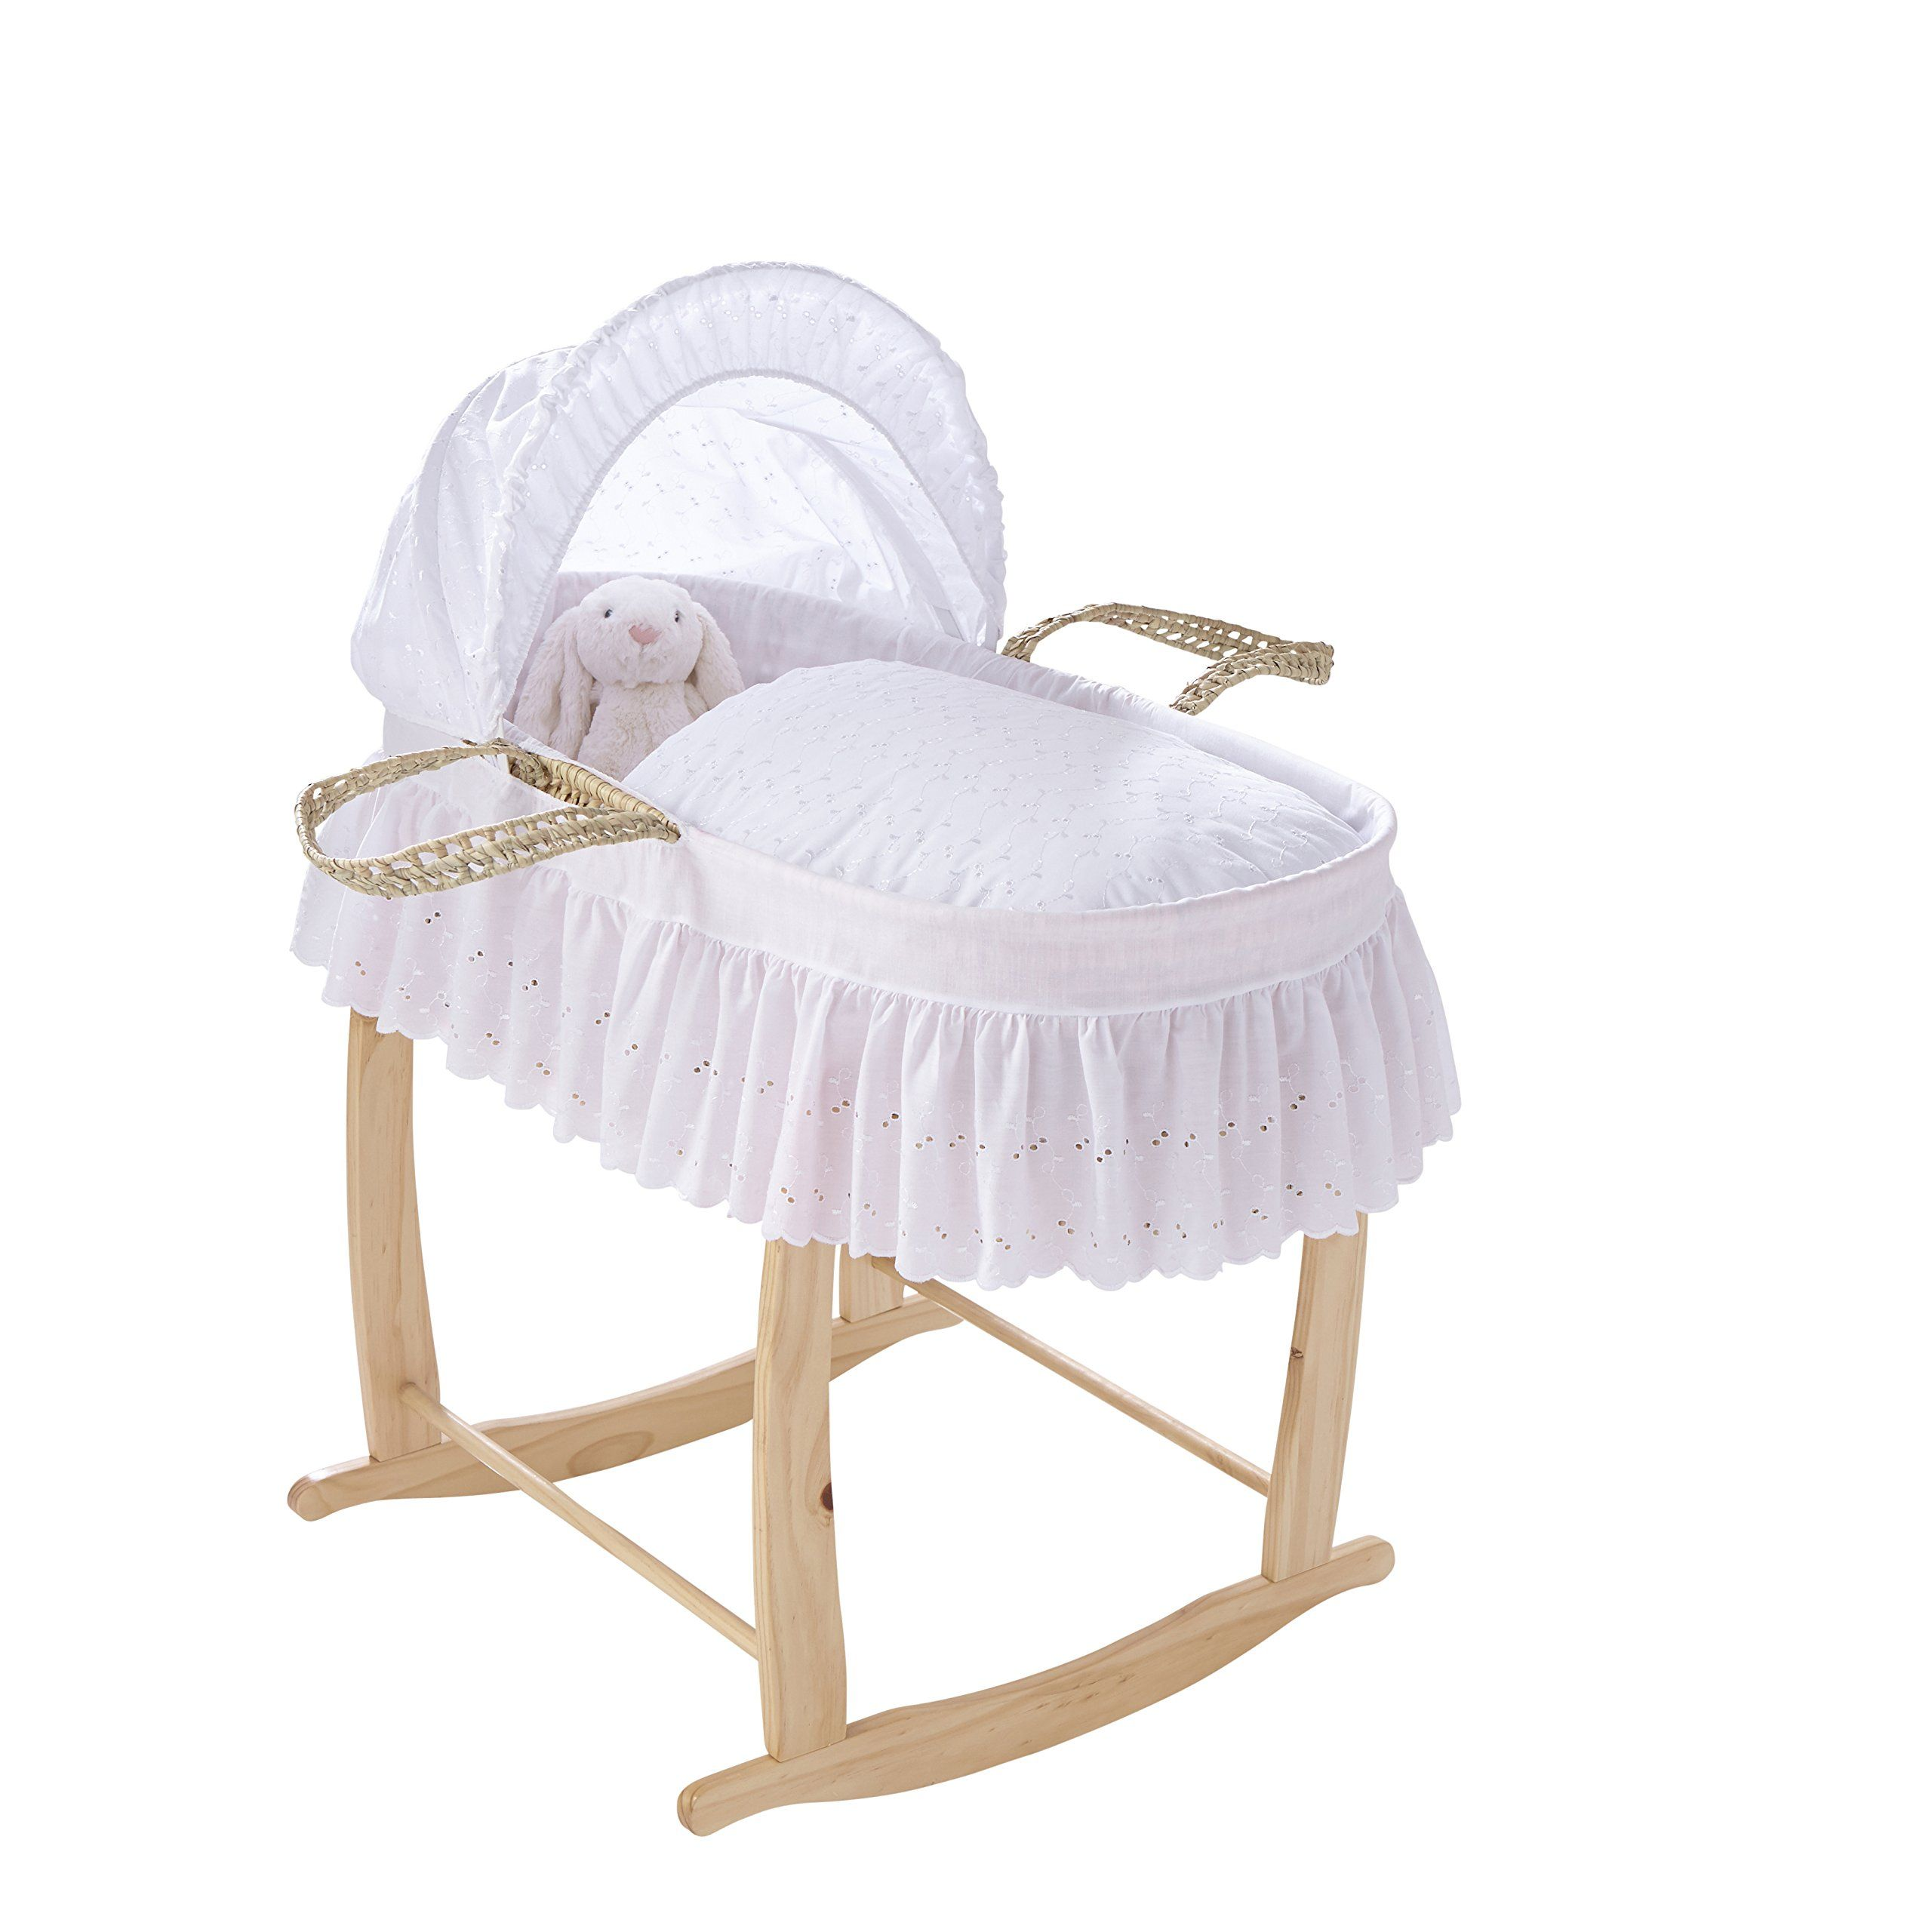 Clair de Lune Pure White Chic Broderie Anglaise Palm Moses